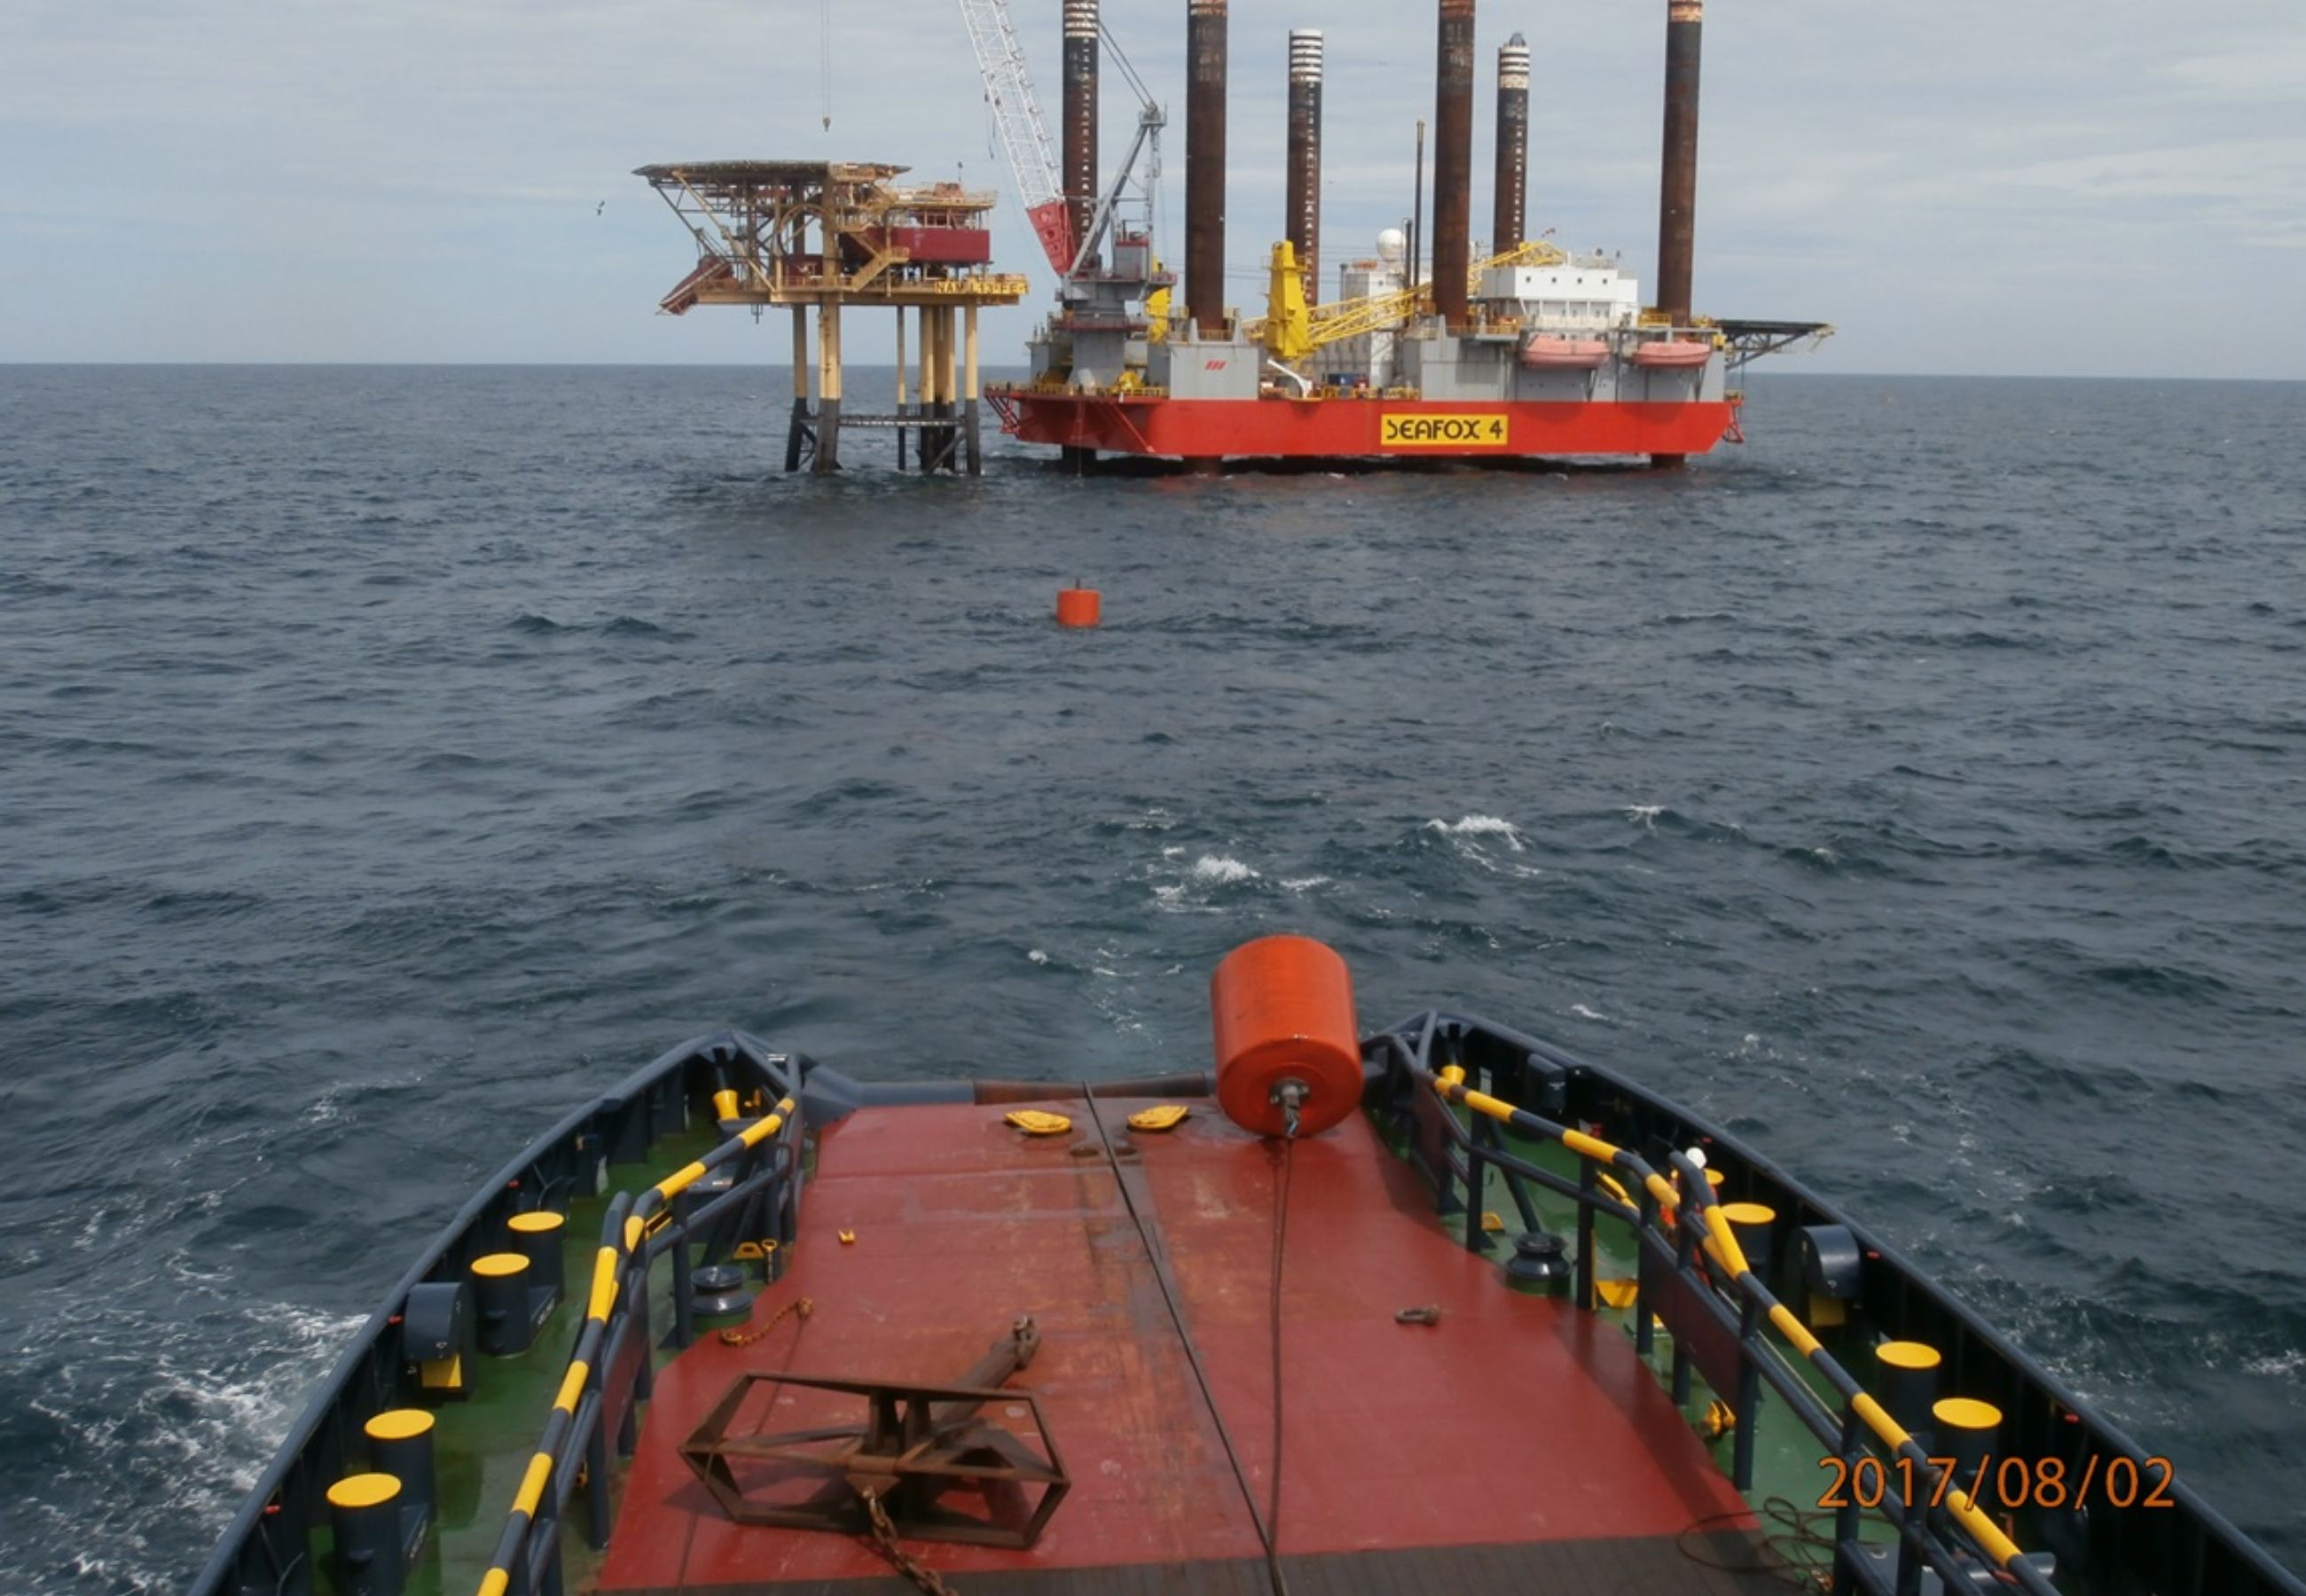 Alp Ace Seafox 4 3First Midline Buoy Is Recovered